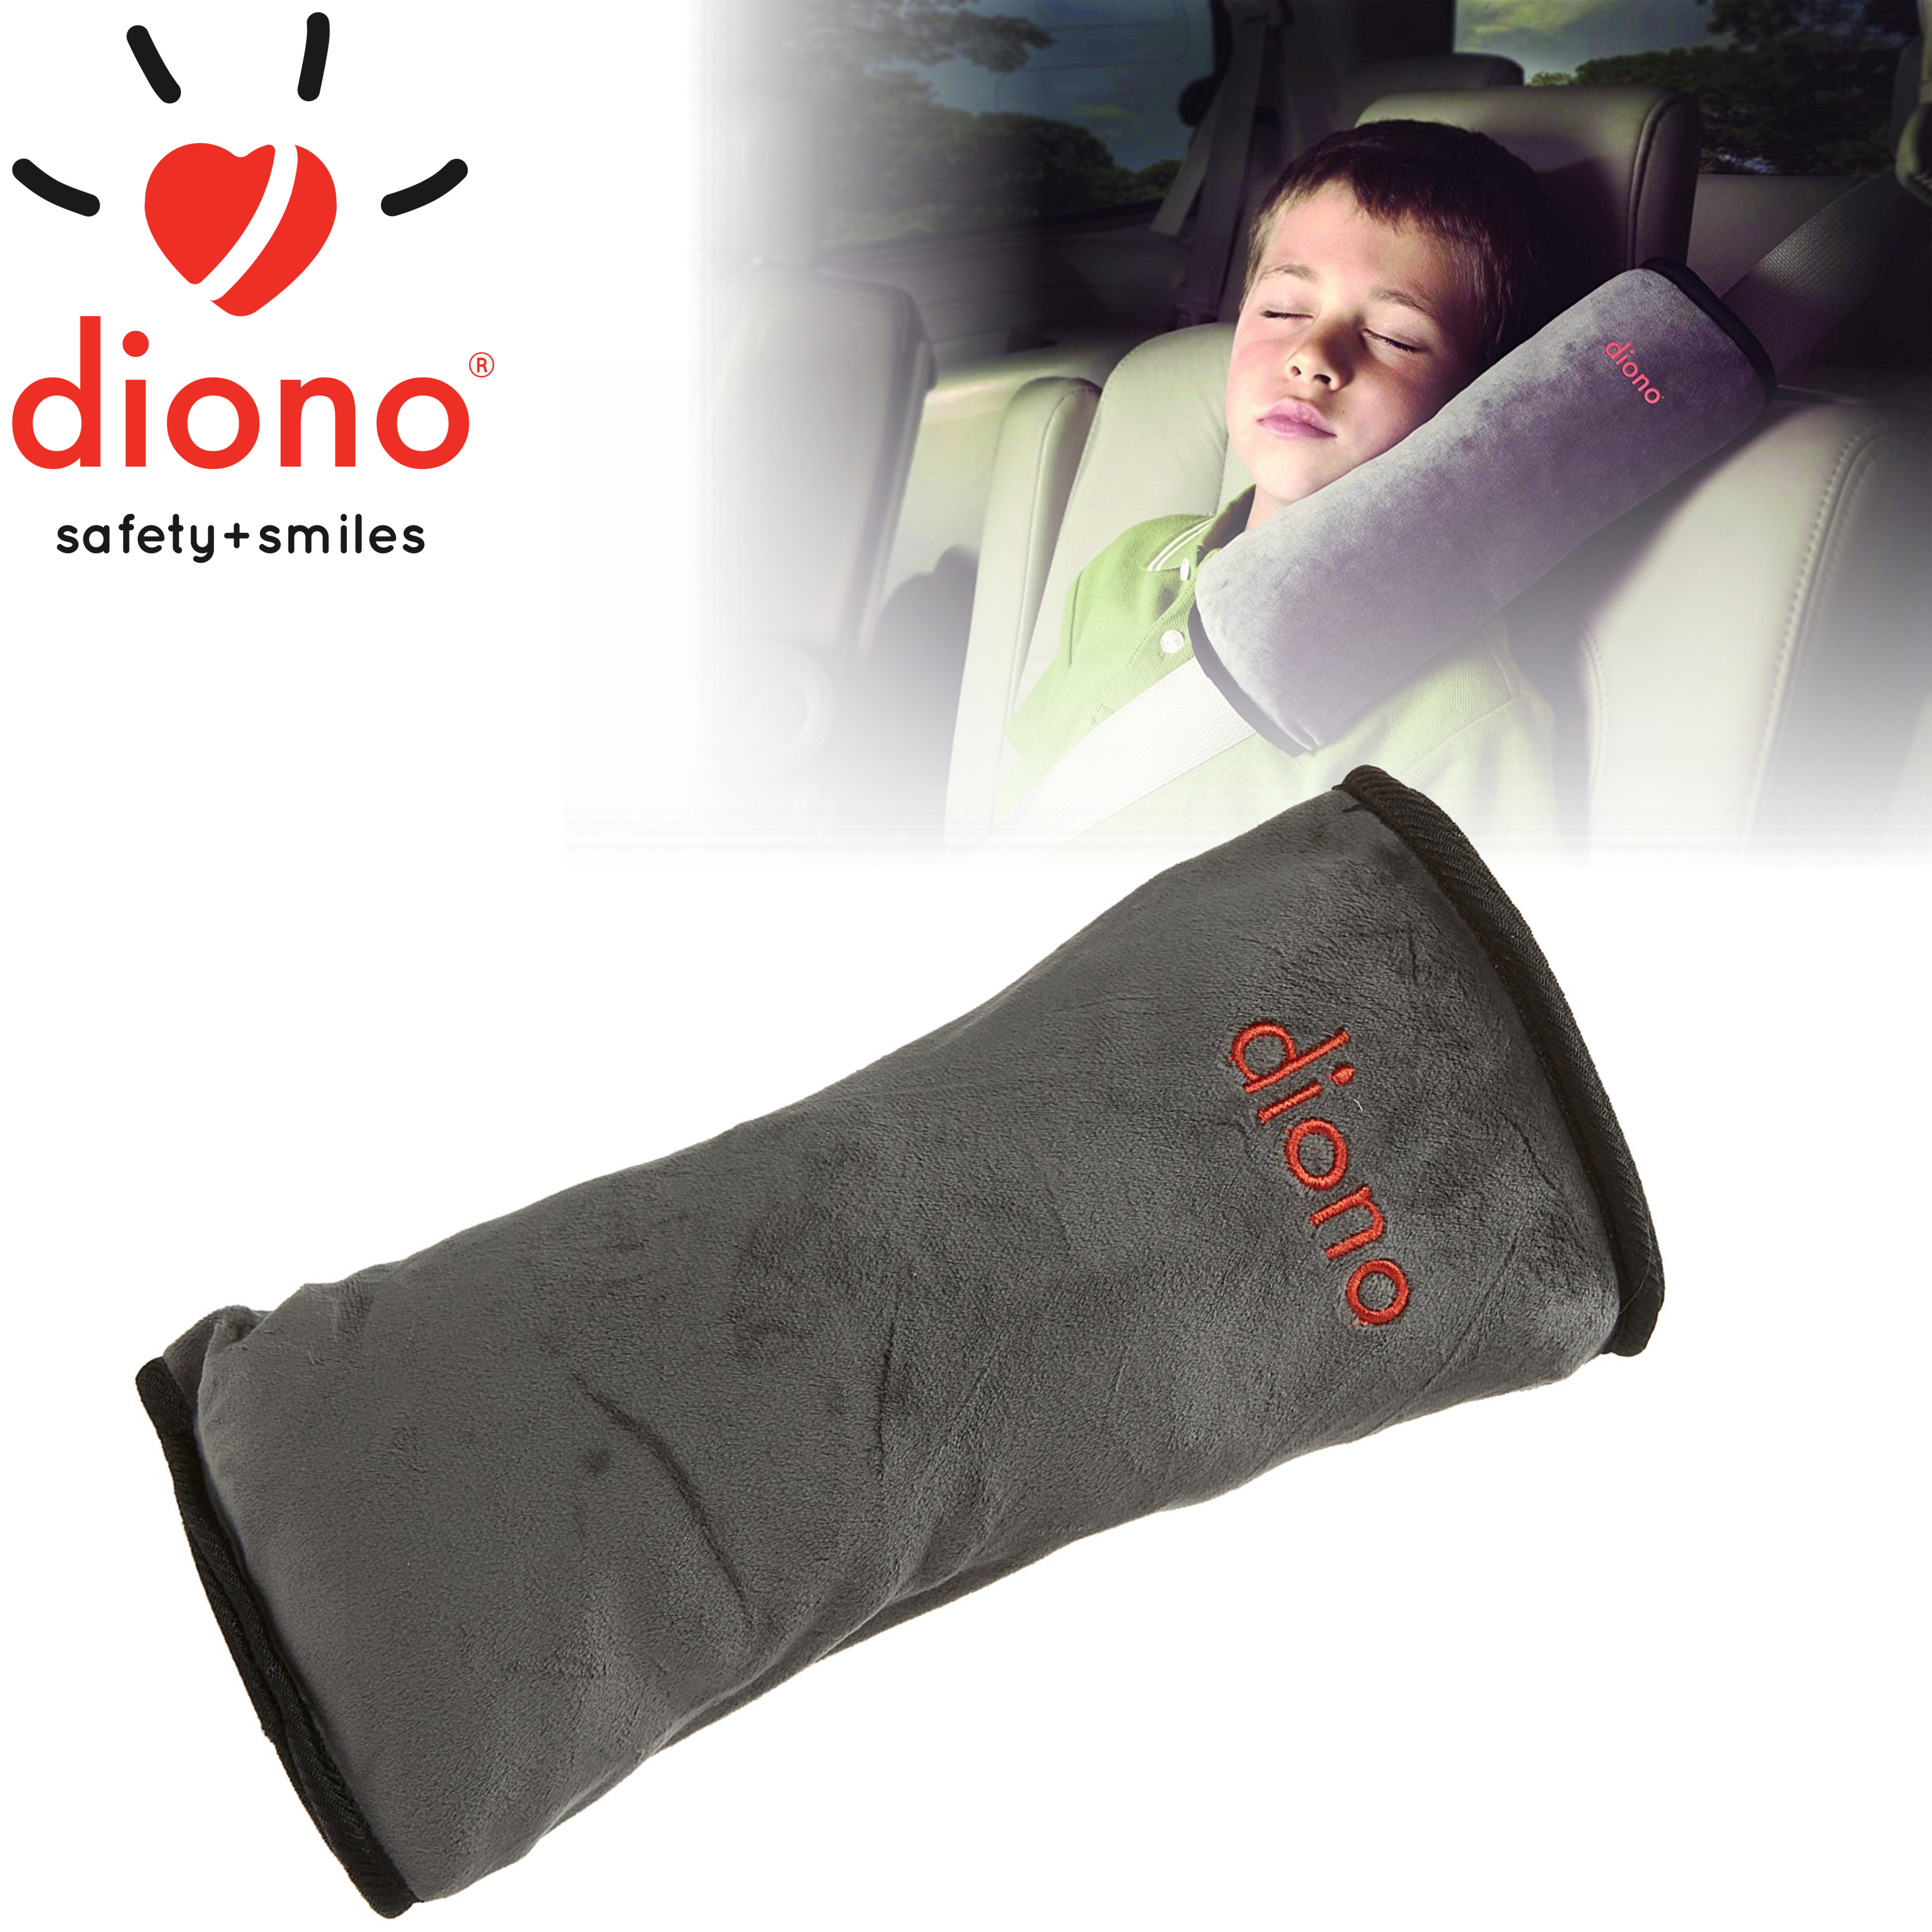 Diono Child/Toddler's Car Seatbelt Soft & Comfy Micro-Fleece Pillow | Washable | New